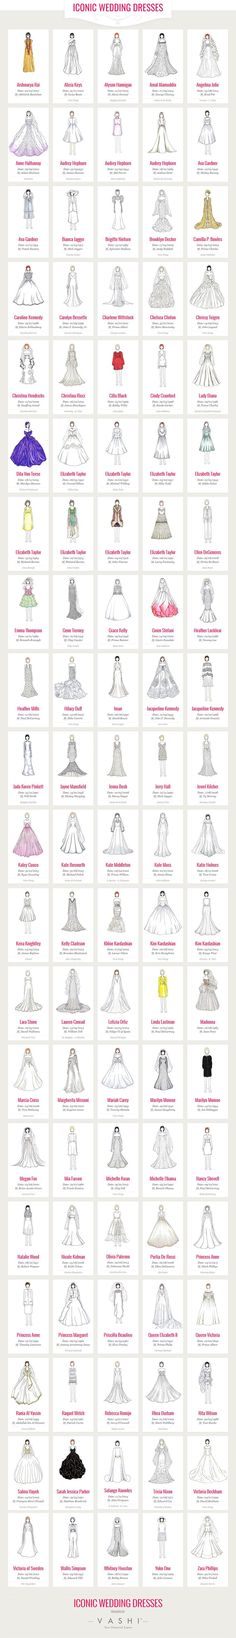 Here's a full, mind-blowing version of the graphic with all 100 dresses, from Indian actress Aishwarya Rai to British royal Zara Phillips. It's hard to pick just ONE favorite: | Here's 100 Of The Most Stylish Celeb Wedding Gowns Ever